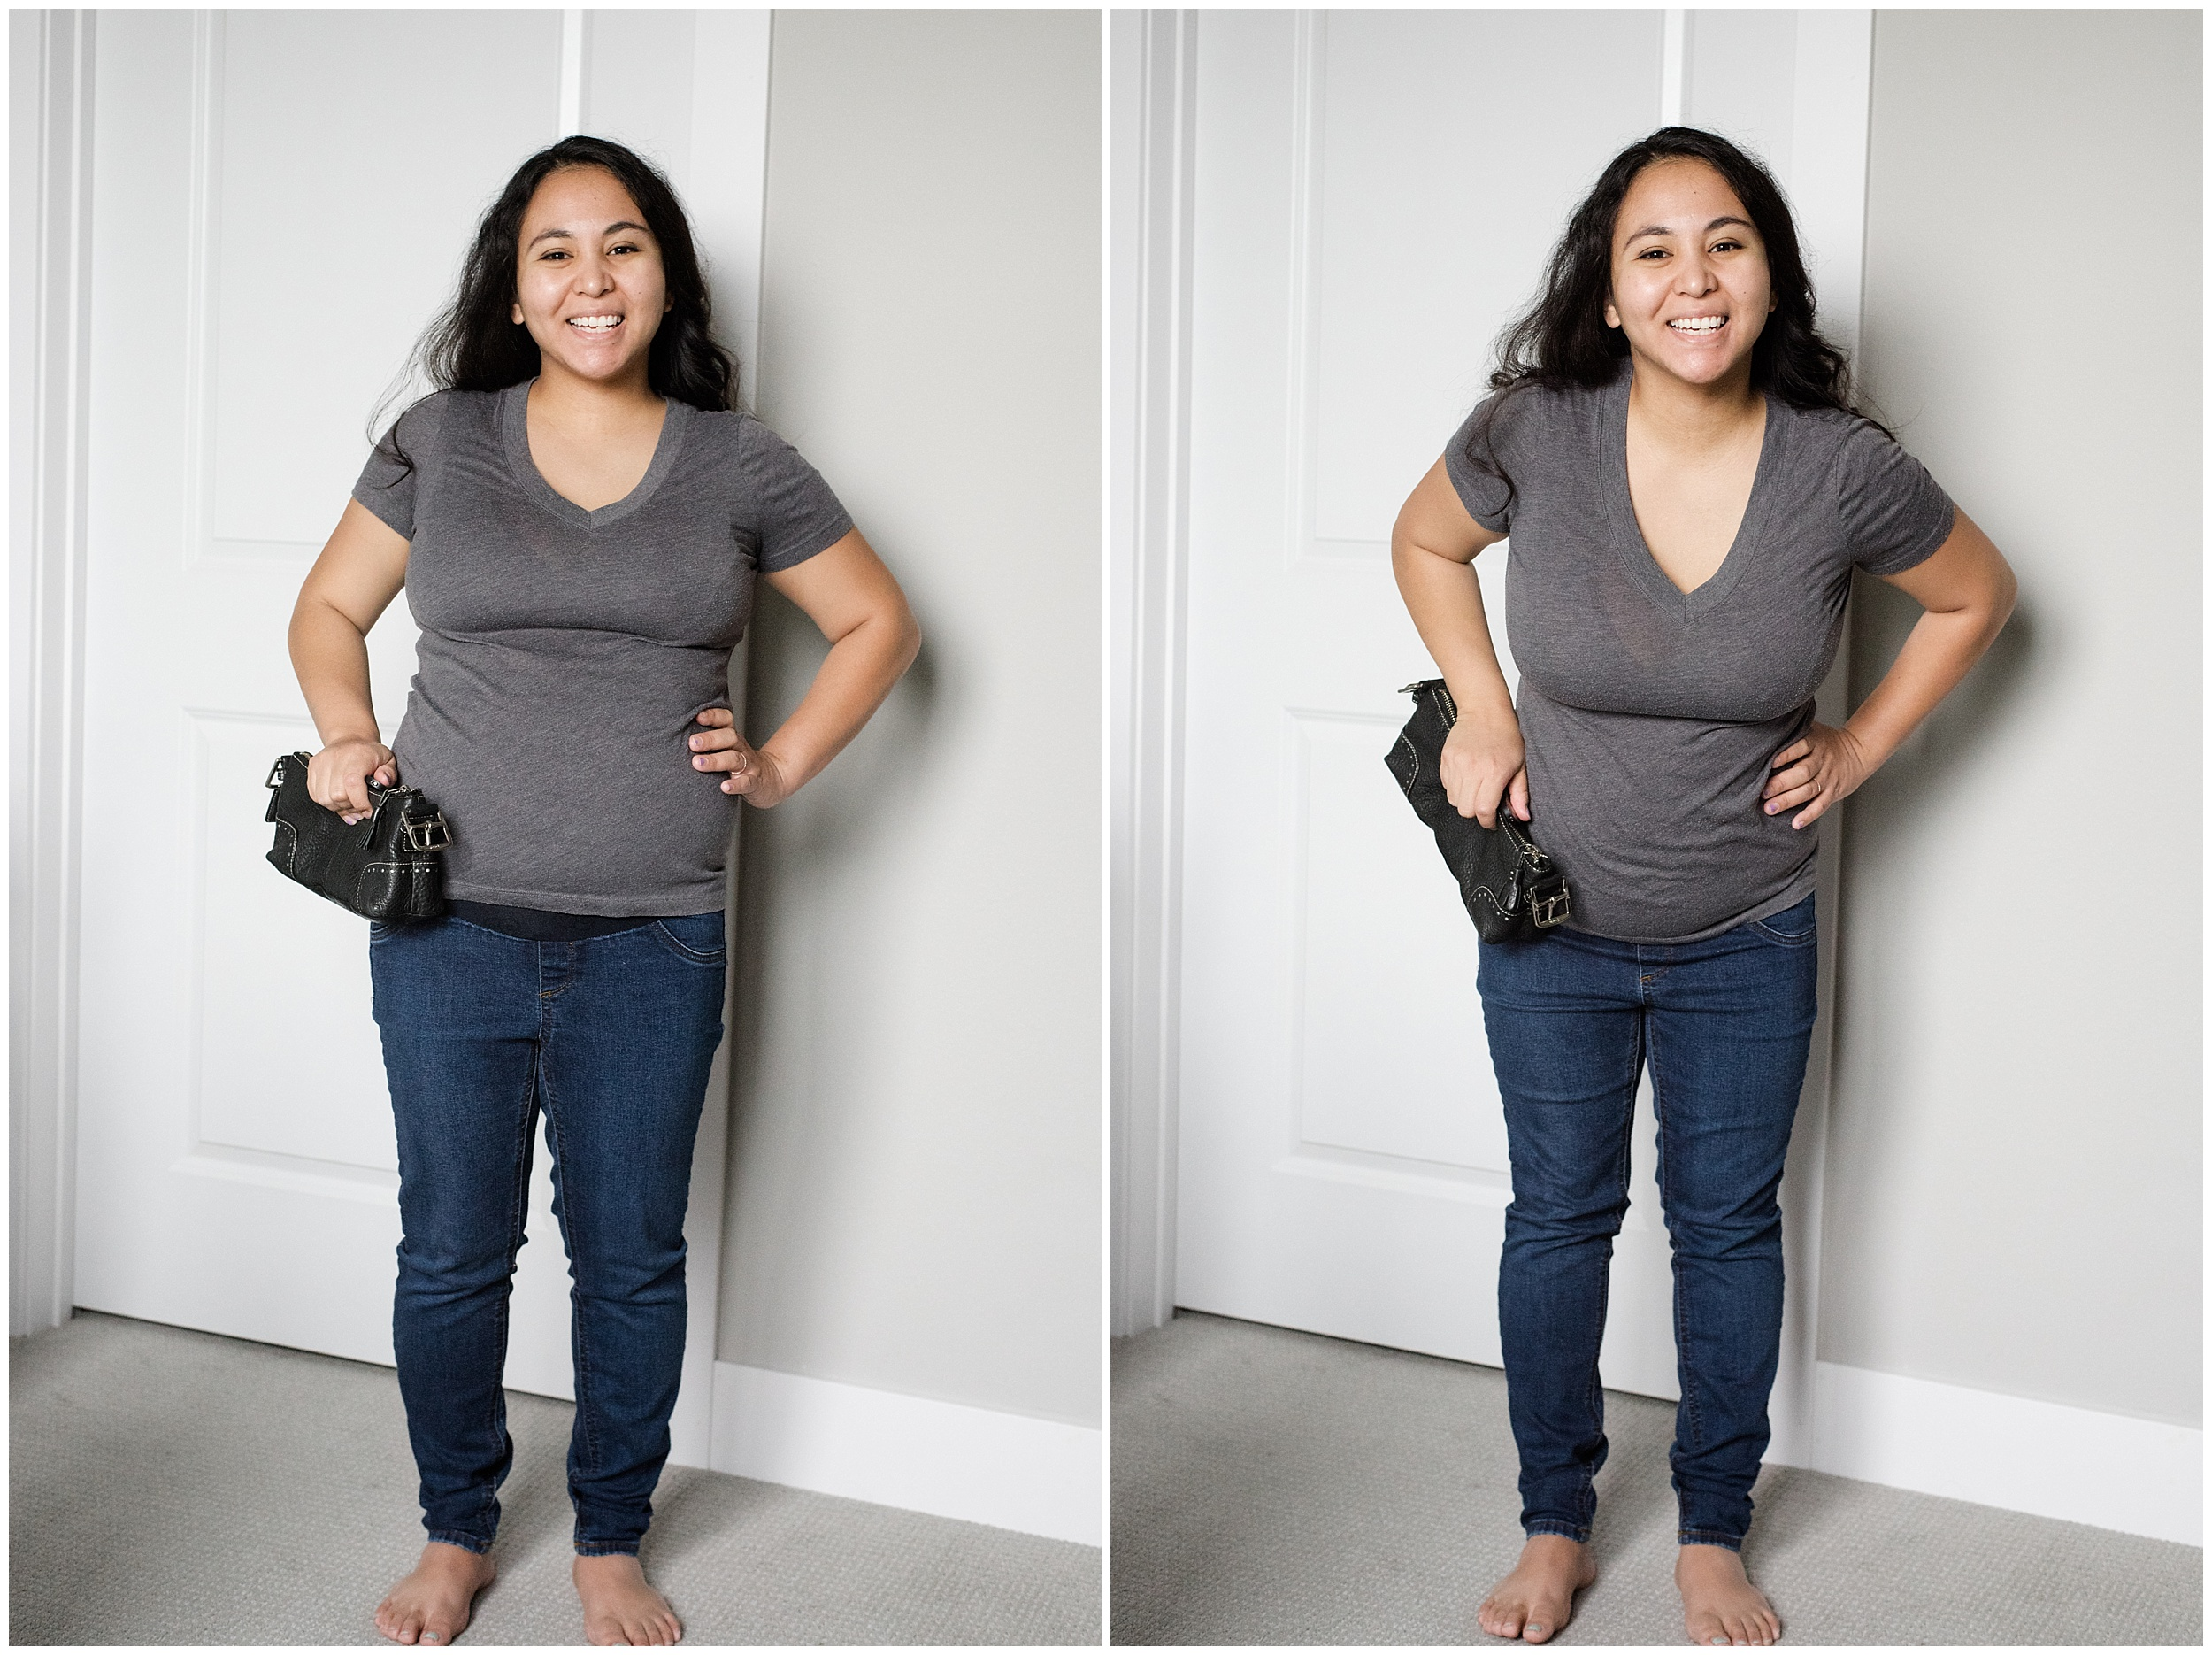 Left photo:I'm pushing my hips forward. Right photo: I'm bending my hips back away from the camera.